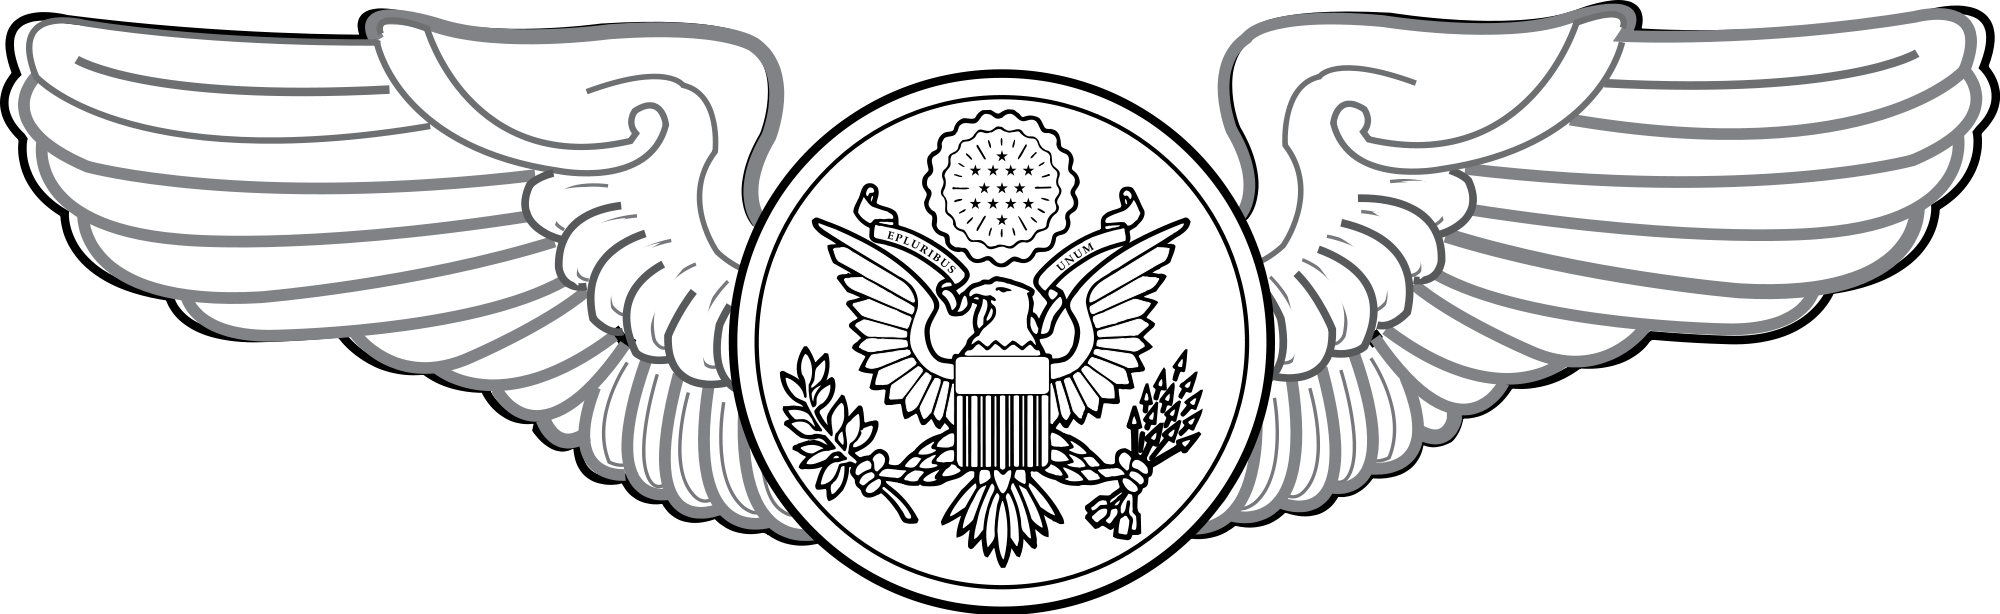 Free Military Badge Cliparts, Download Free Clip Art, Free.